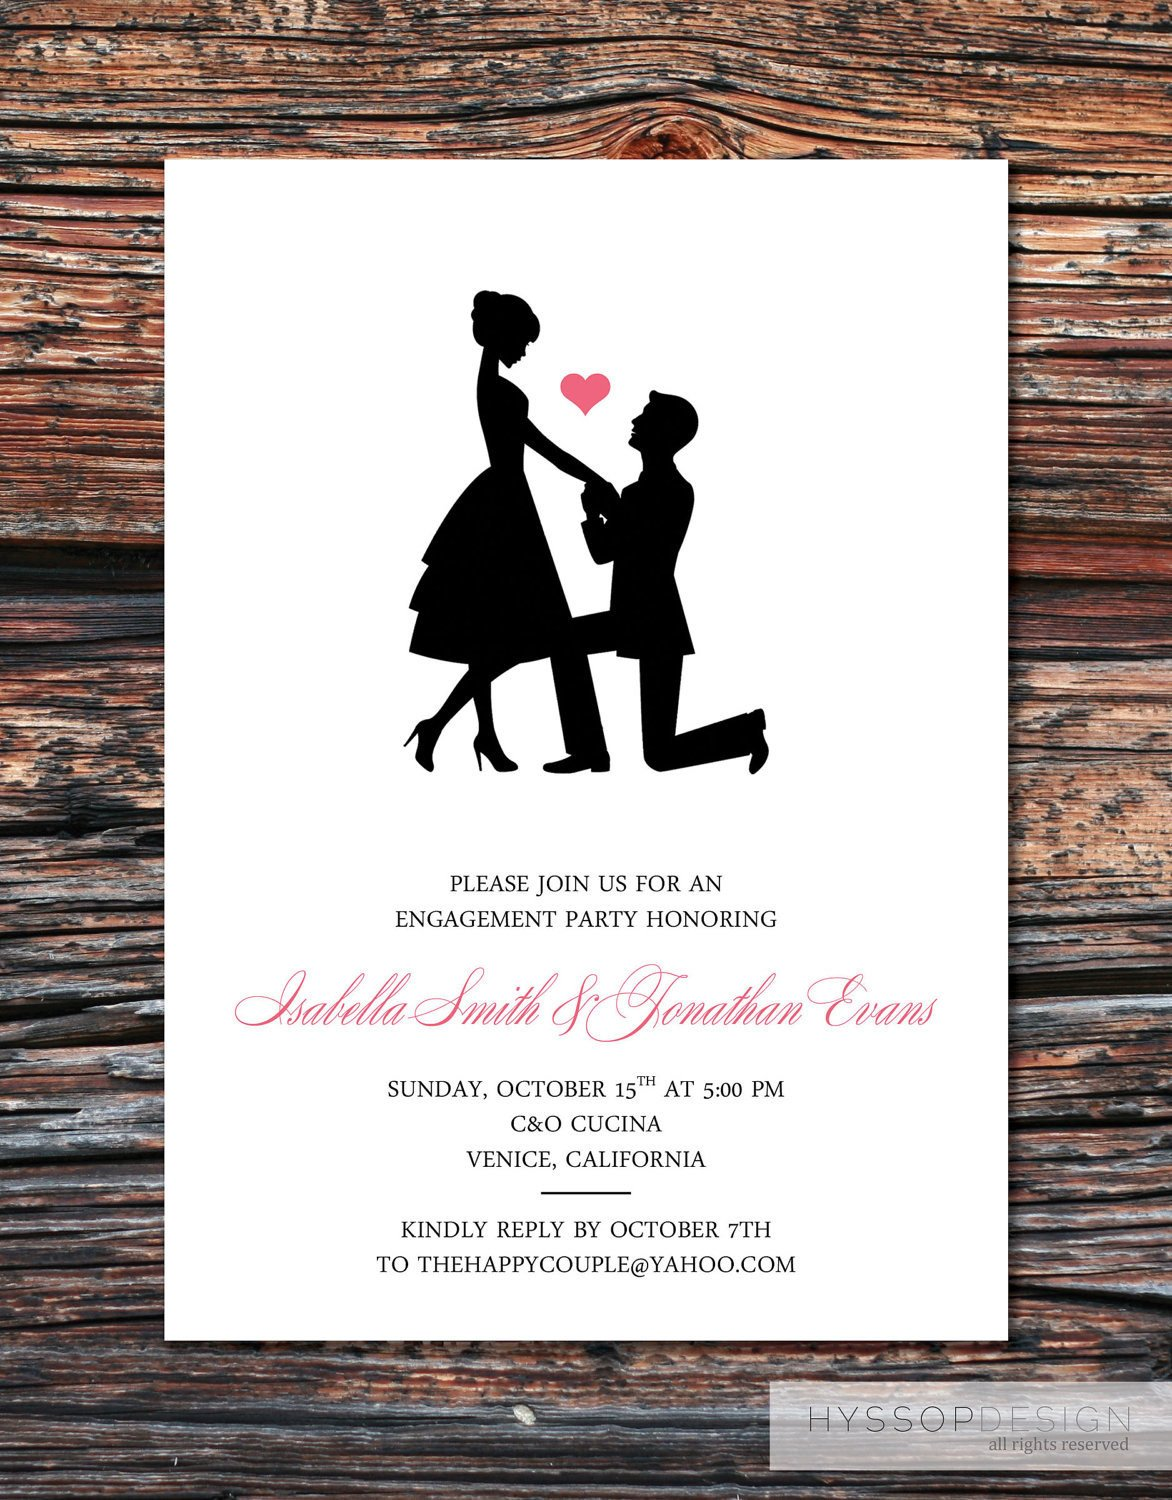 Engagement Party Invitation Templates Printable Diy Sweet Silhouette Proposal by Hyssopdesign On